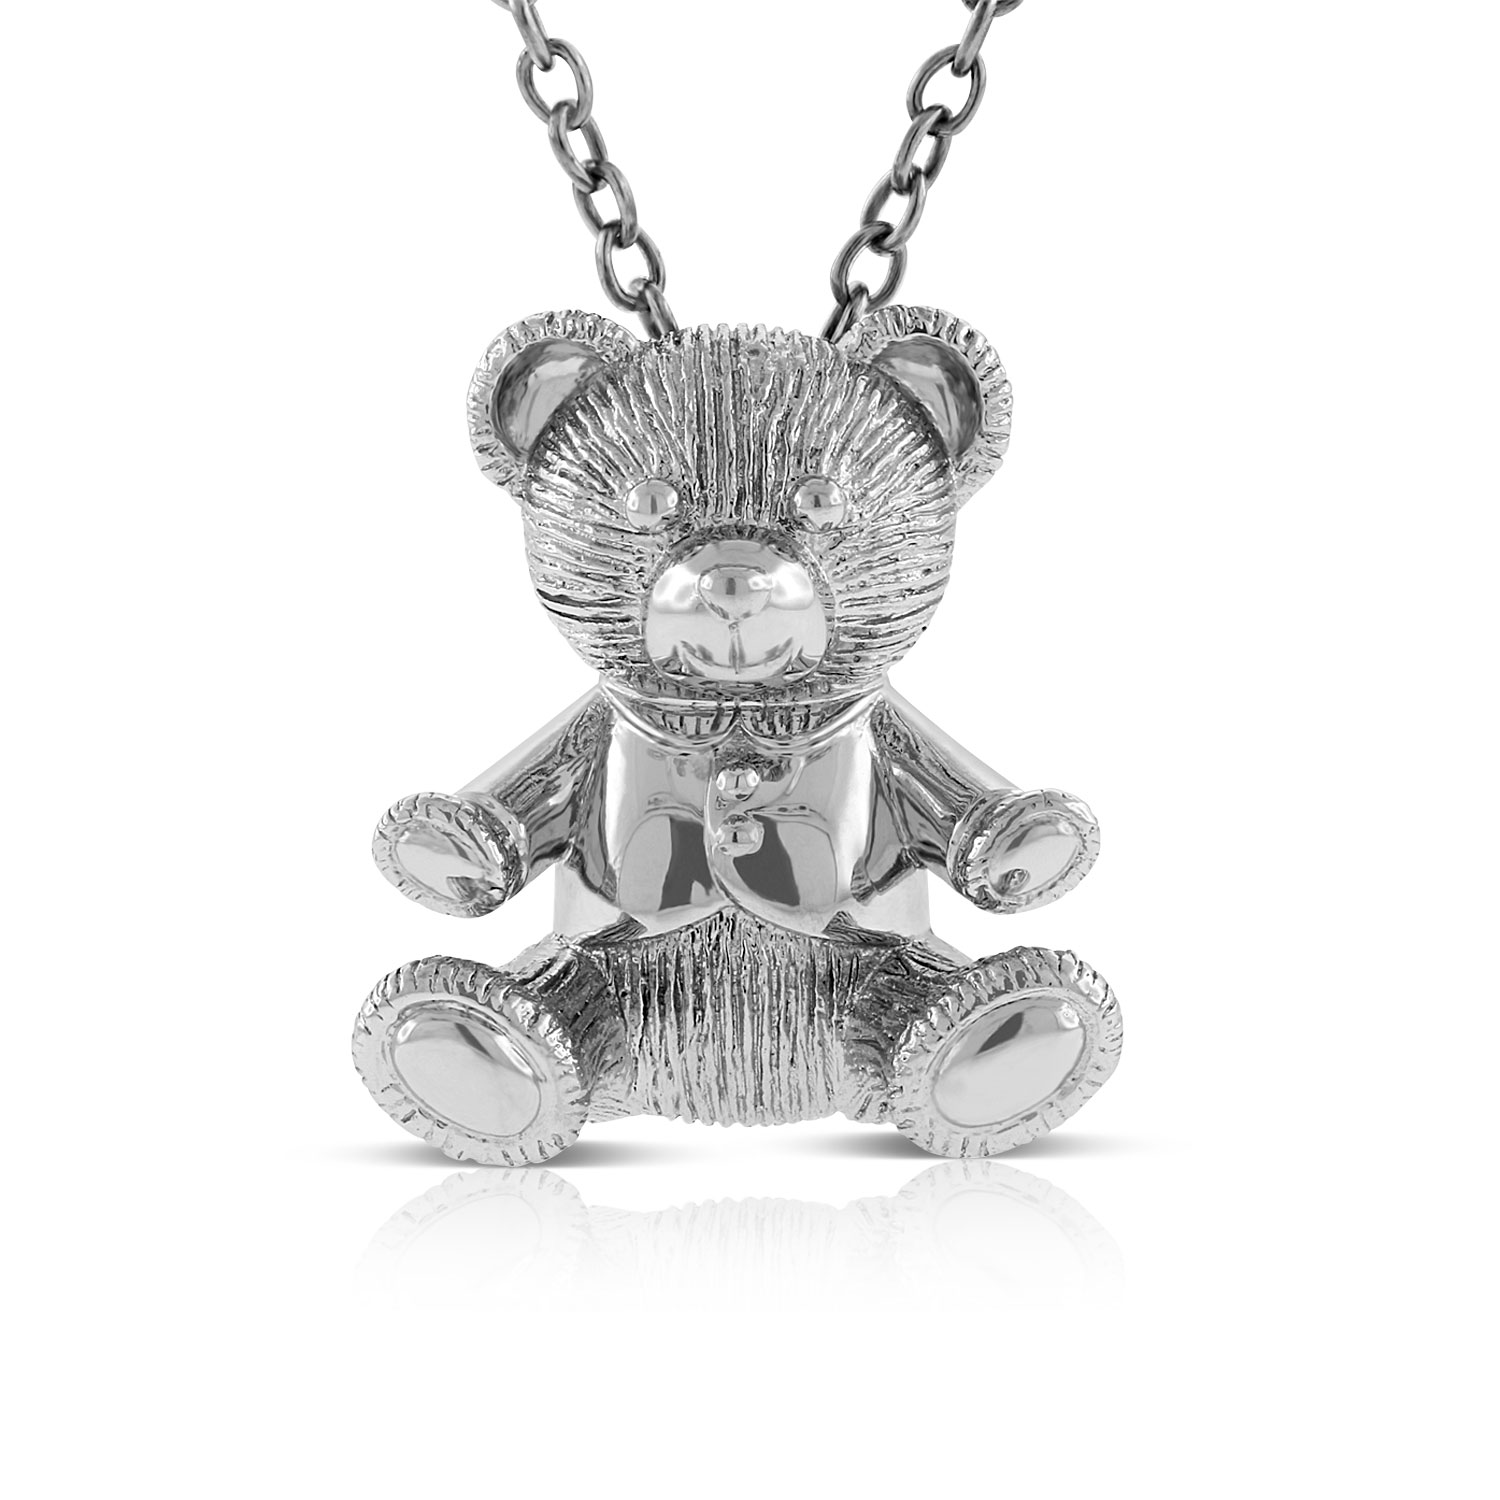 2017 benny bear pendant in sterling silver ben bridge jeweler 2017 benny bear pendant in sterling silver aloadofball Images